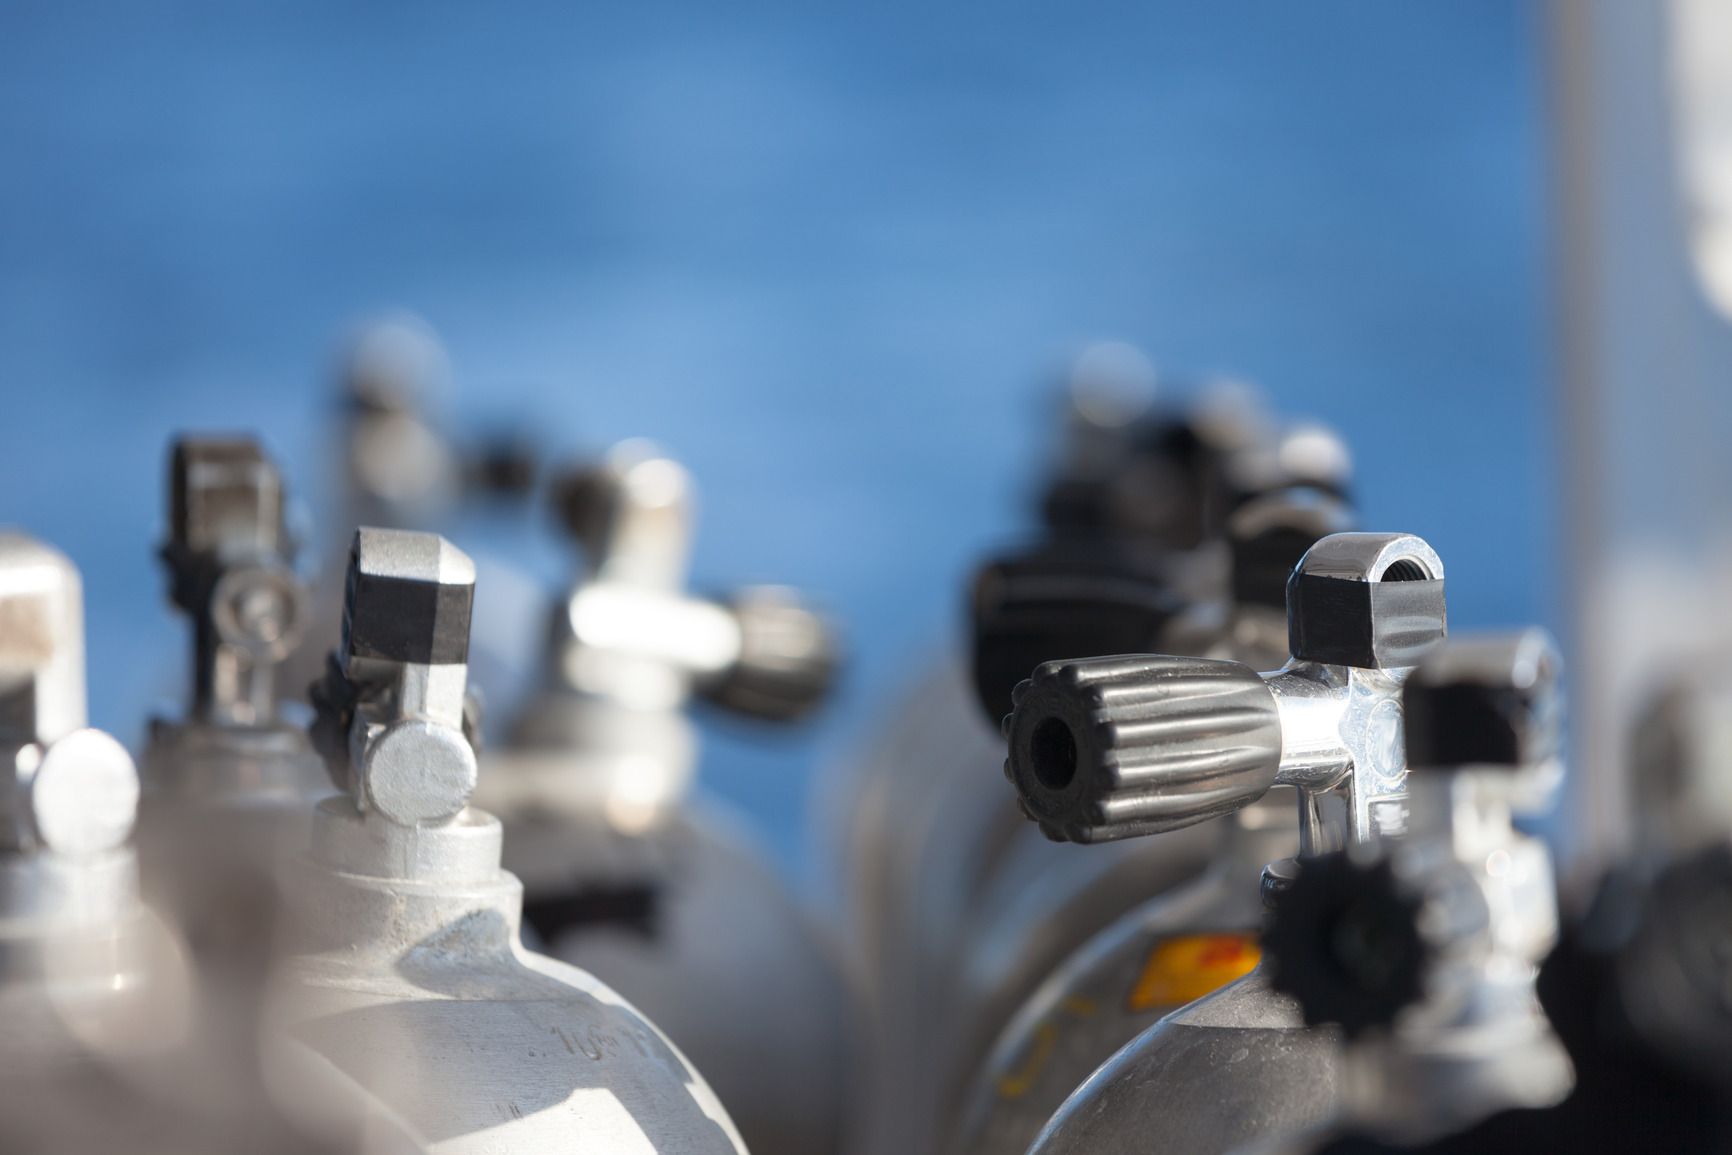 photodune-3856321-macro-shot-of-valves-on-scuba-equipment-m